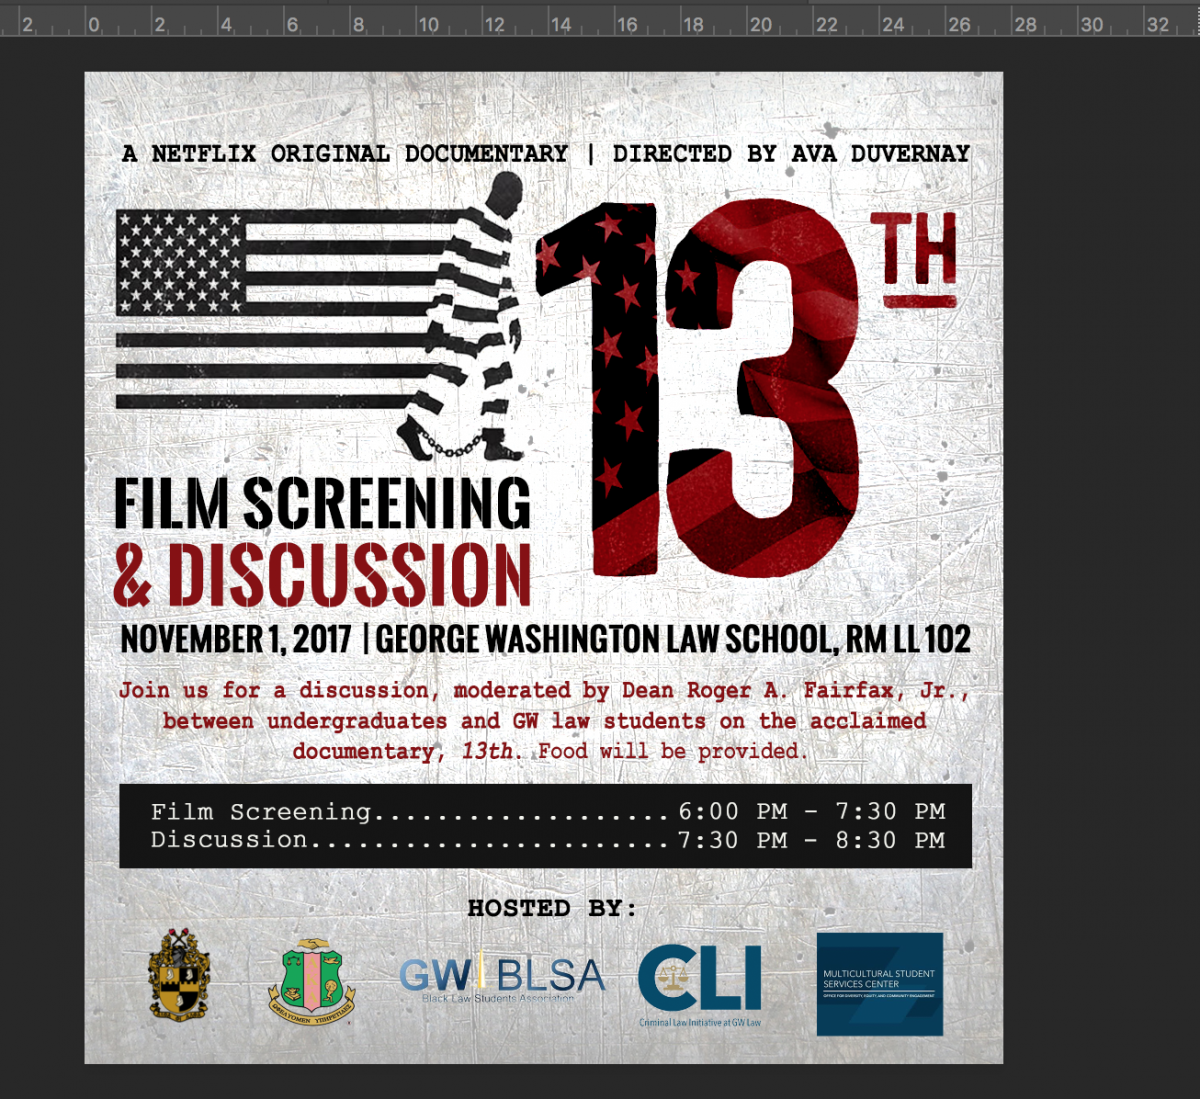 13th Film Screening and Discussion